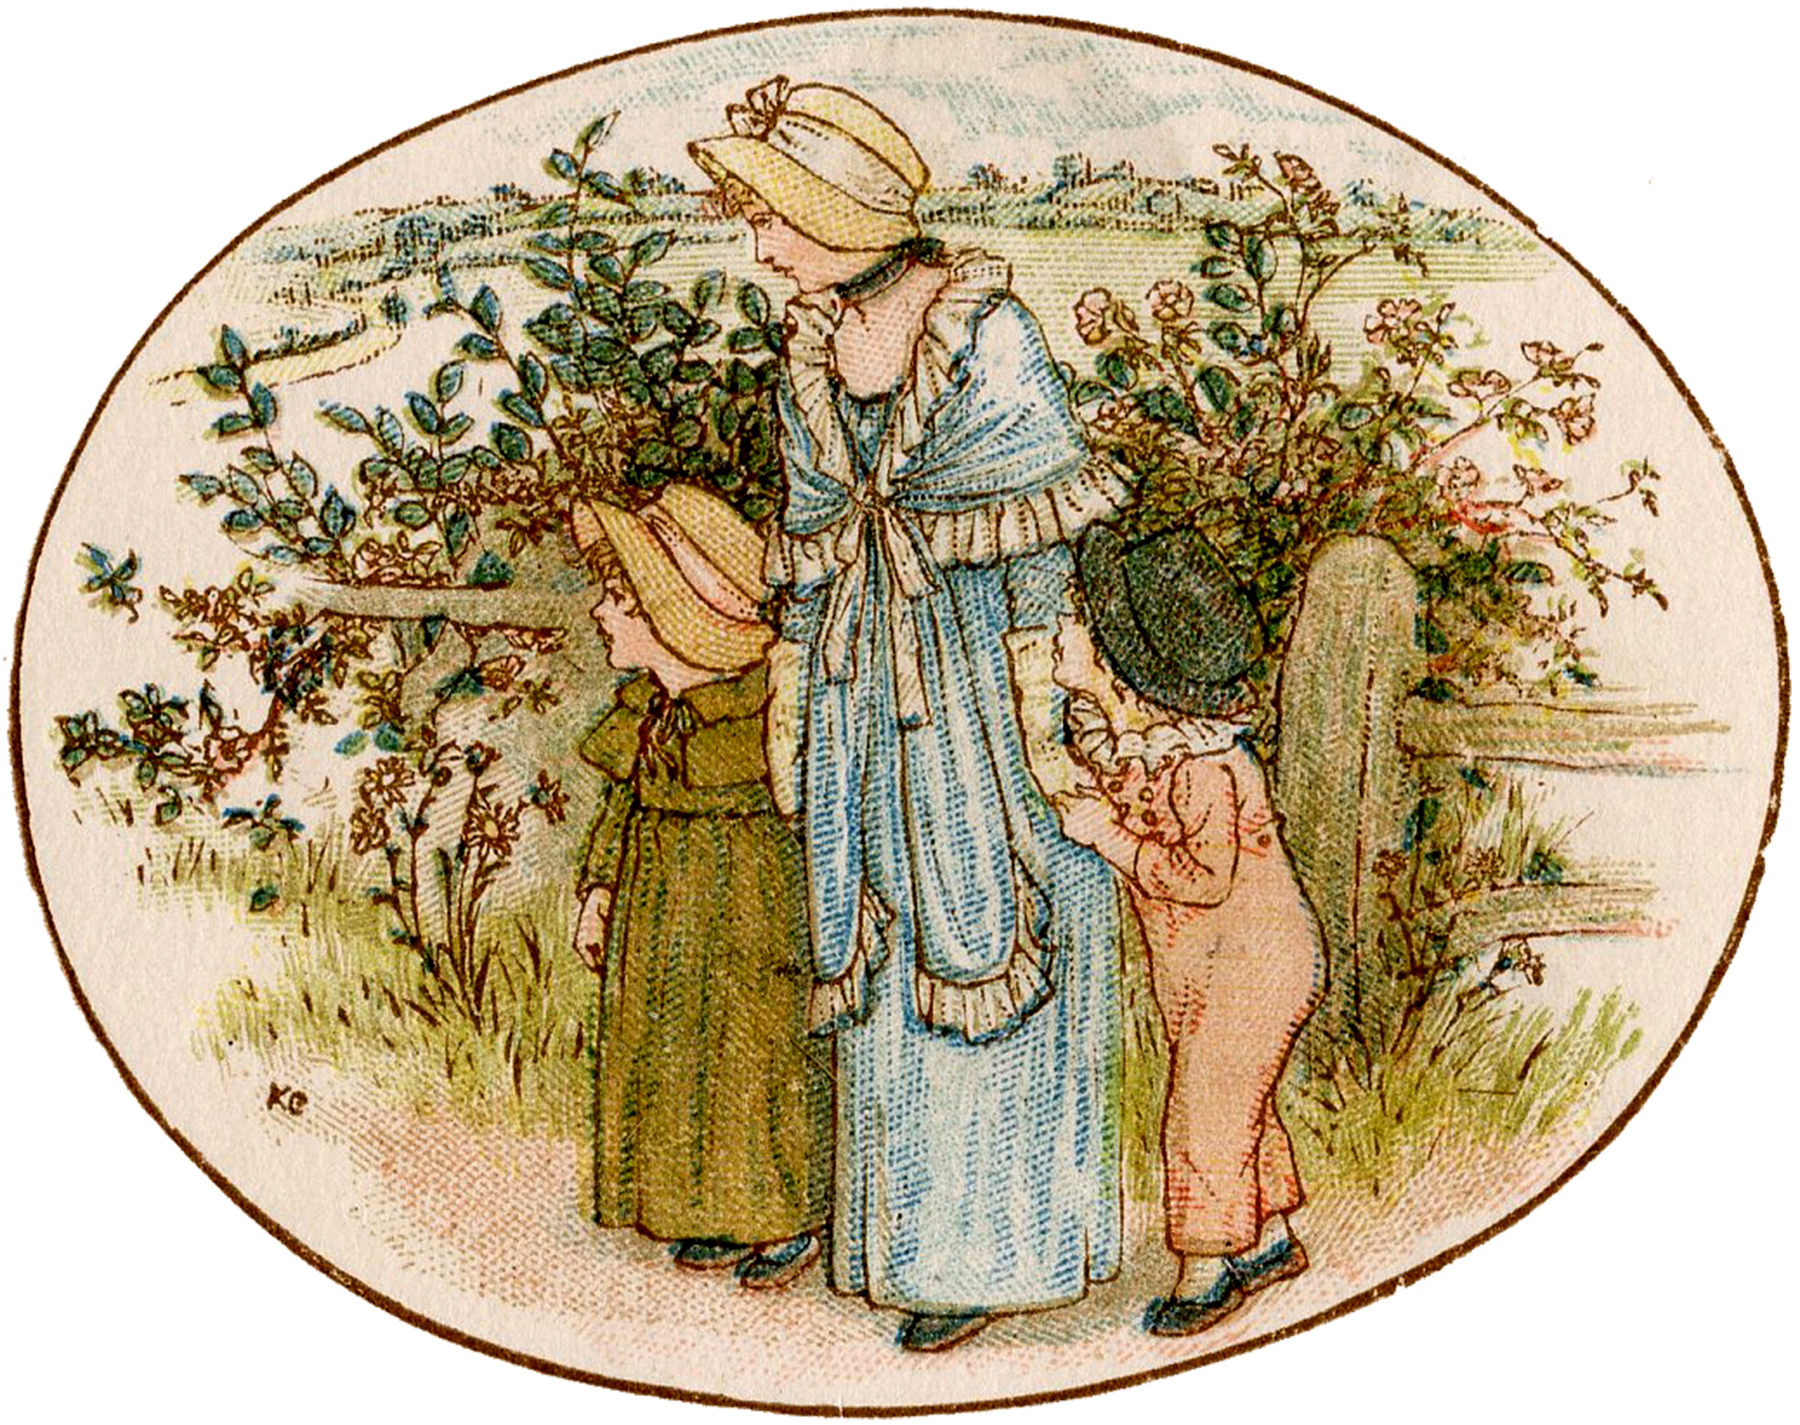 Vintage Mother and Children Garden Image - The Graphics Fairy